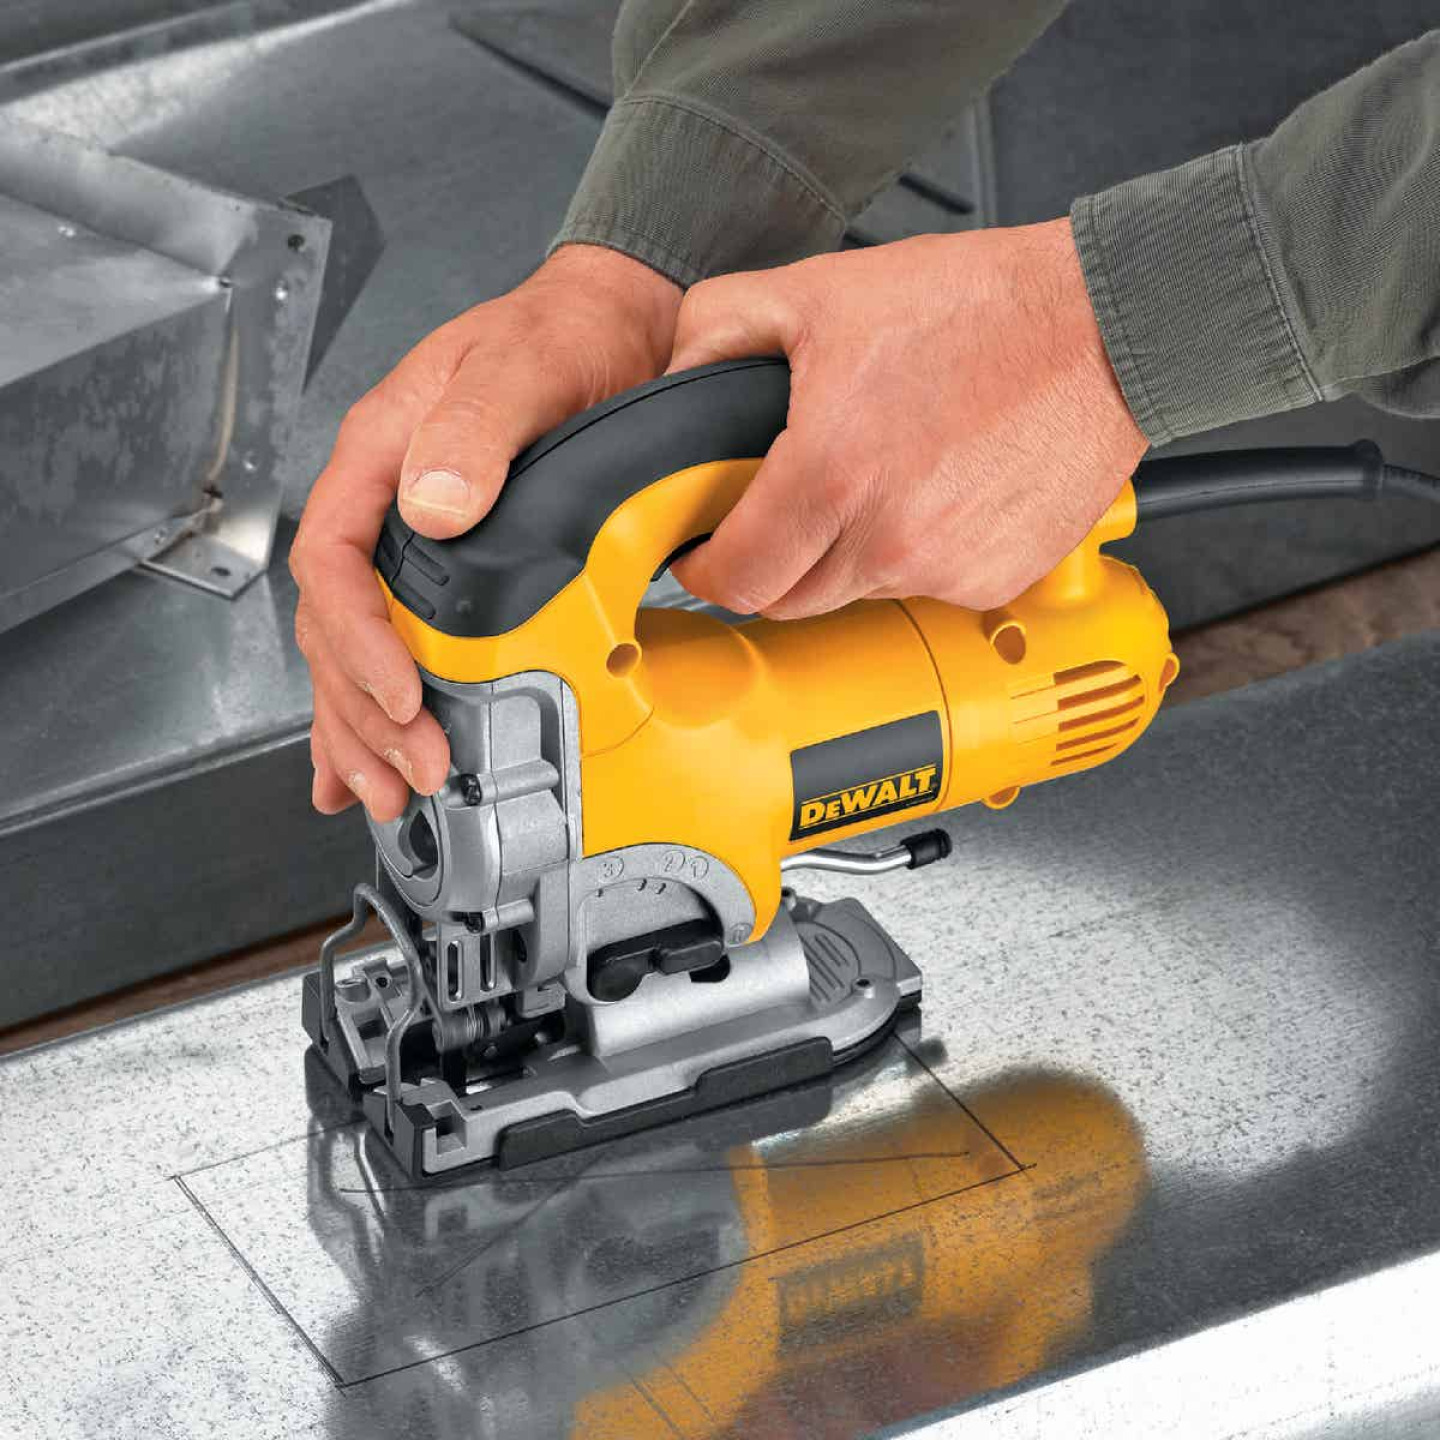 DeWalt 6.5A 4-Position 500-3100 SPM Jig Saw Kit Image 5